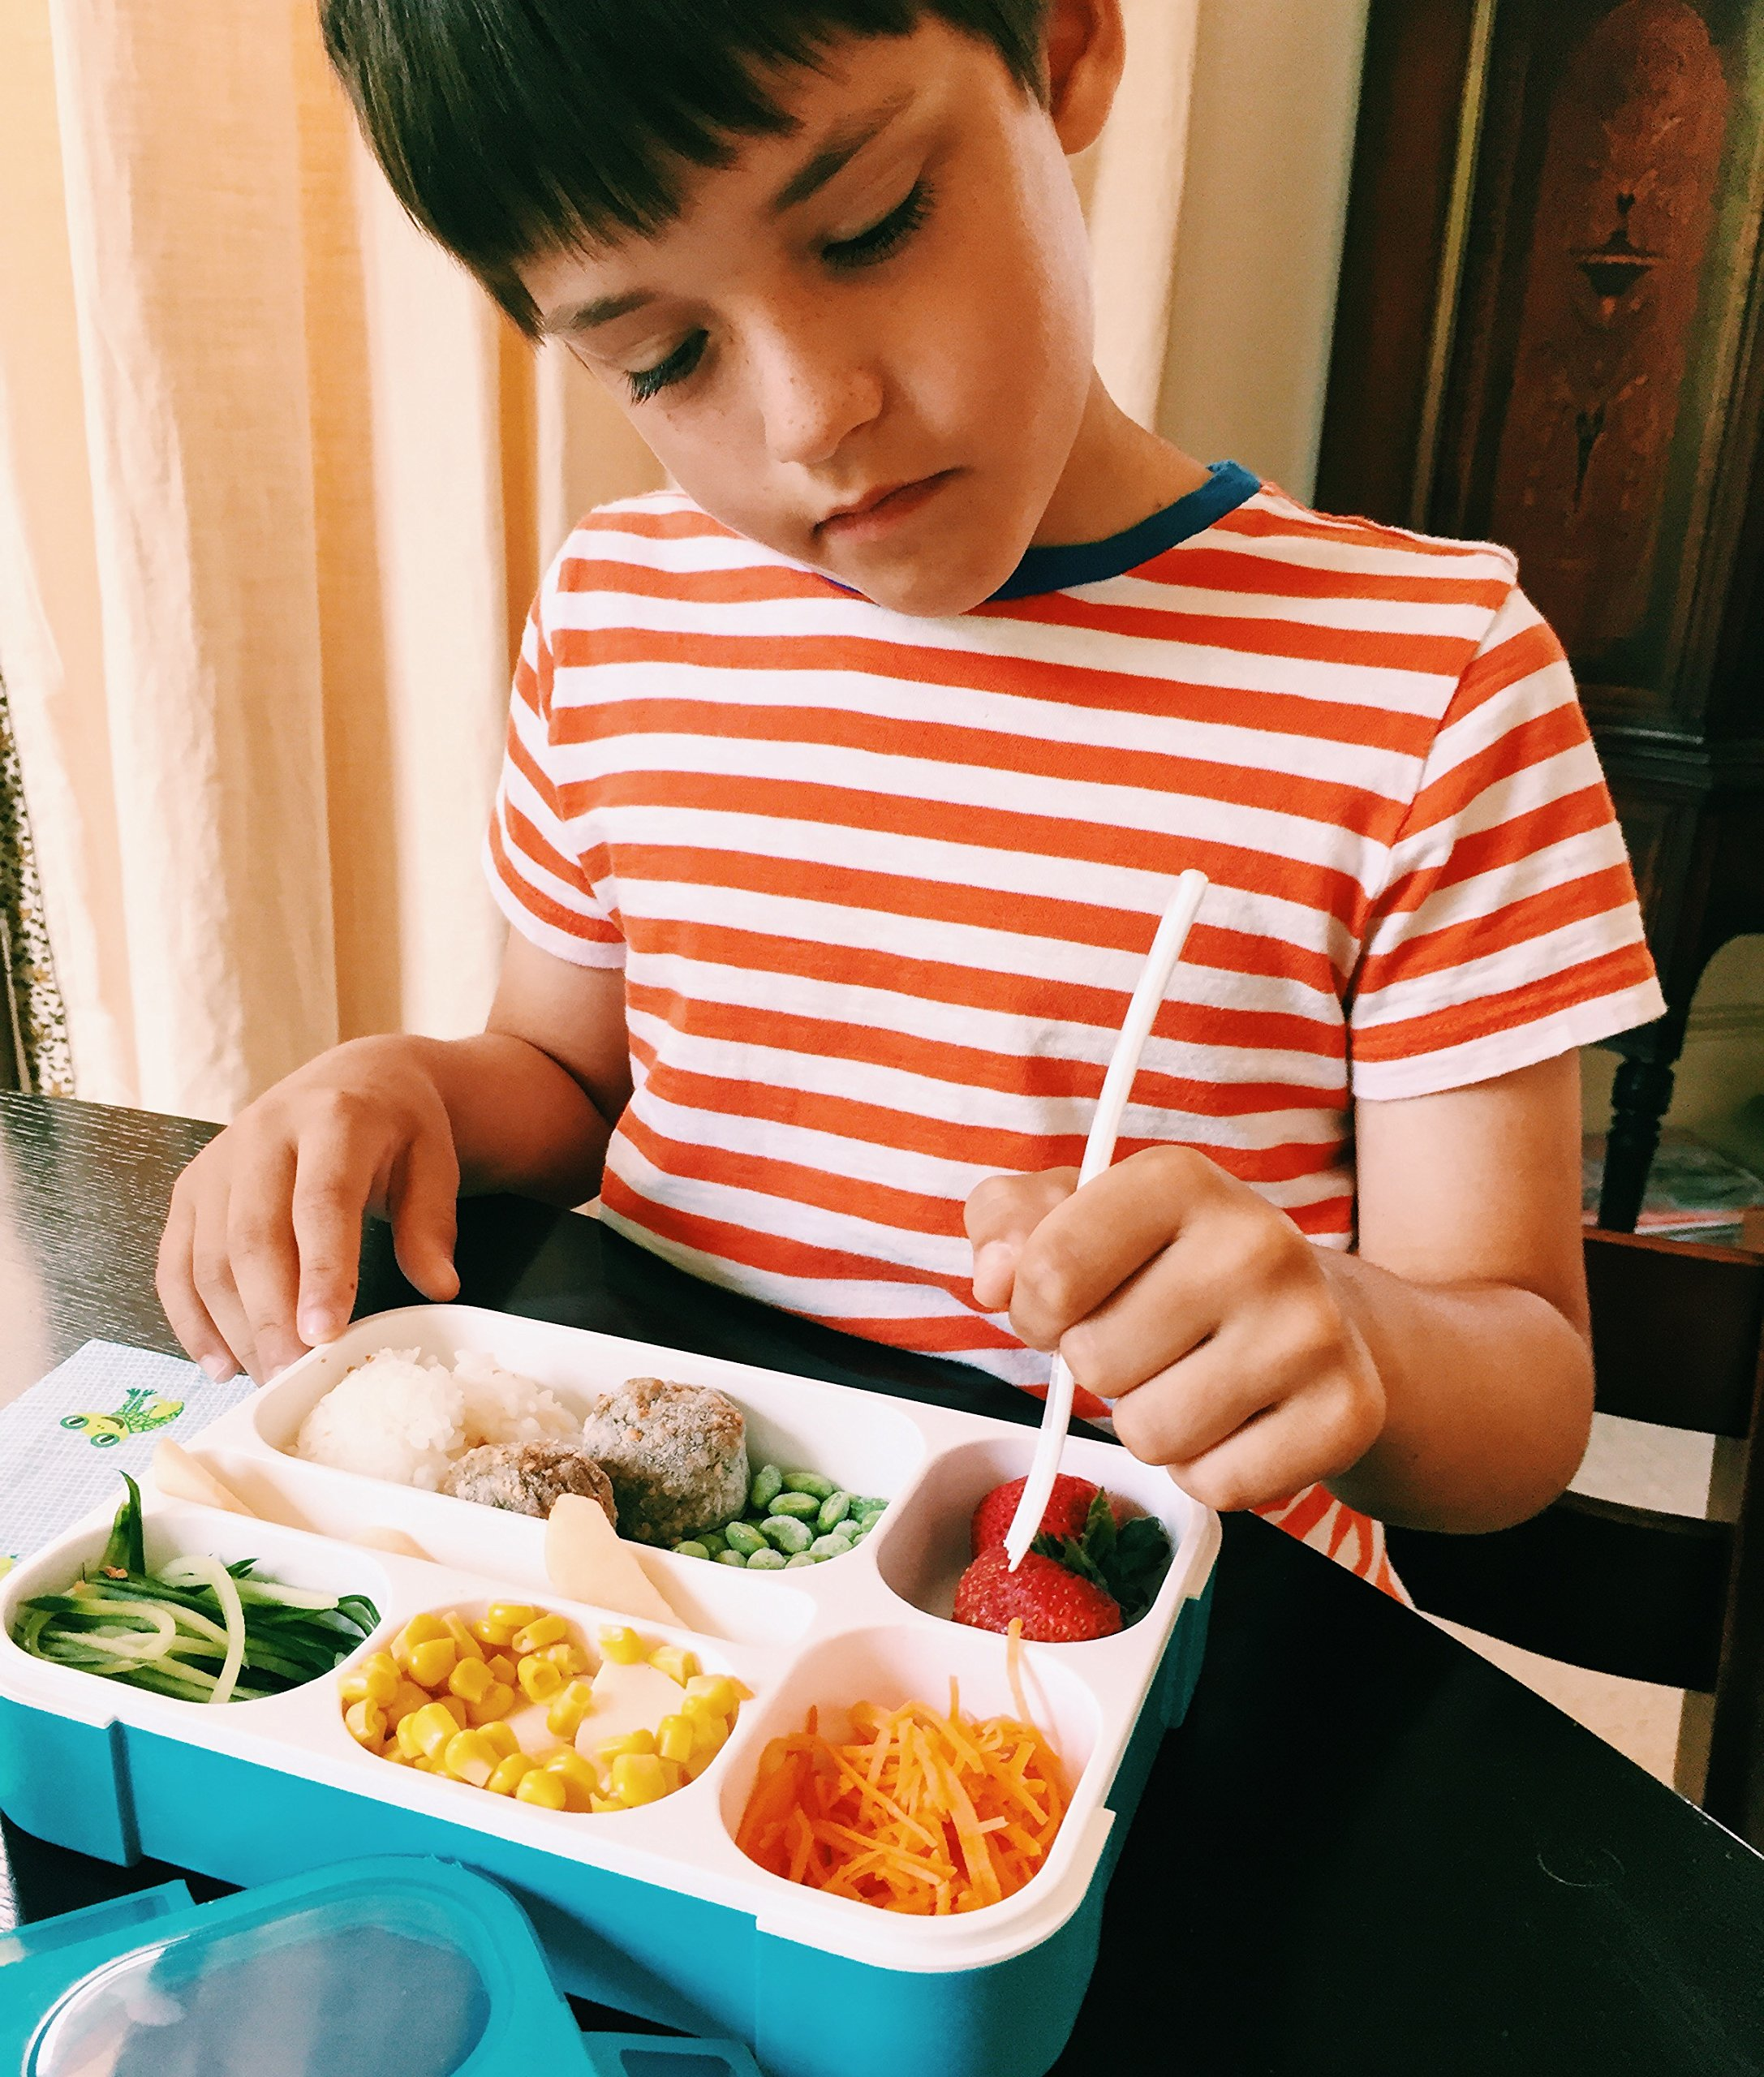 Lunch Box + Snack Container Set. Bento Lunchbox with 6 Compartments + Snackbox w/ 3. Durable School Bentobox + Meal Portion Containers for Kids, Adults. Boxes are Leakproof. BPA-Free Dishwasher & Micr